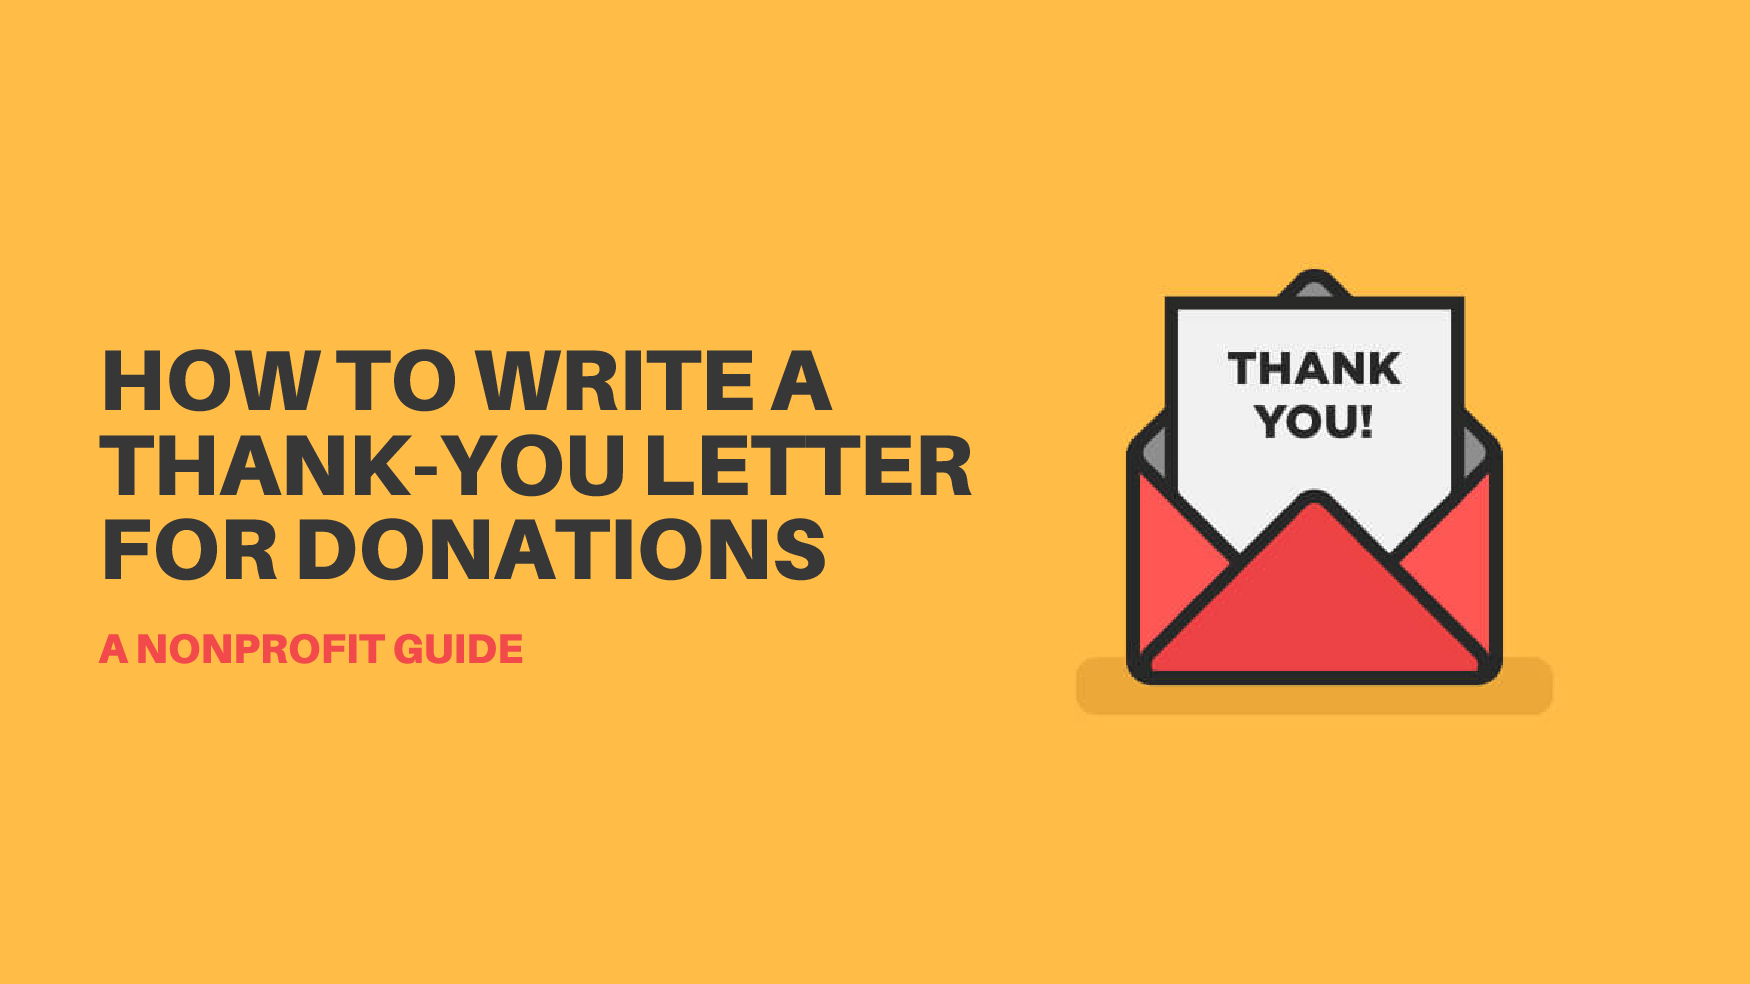 How To Write A Thank-You Letter For Donations | A Nonprofit Guide